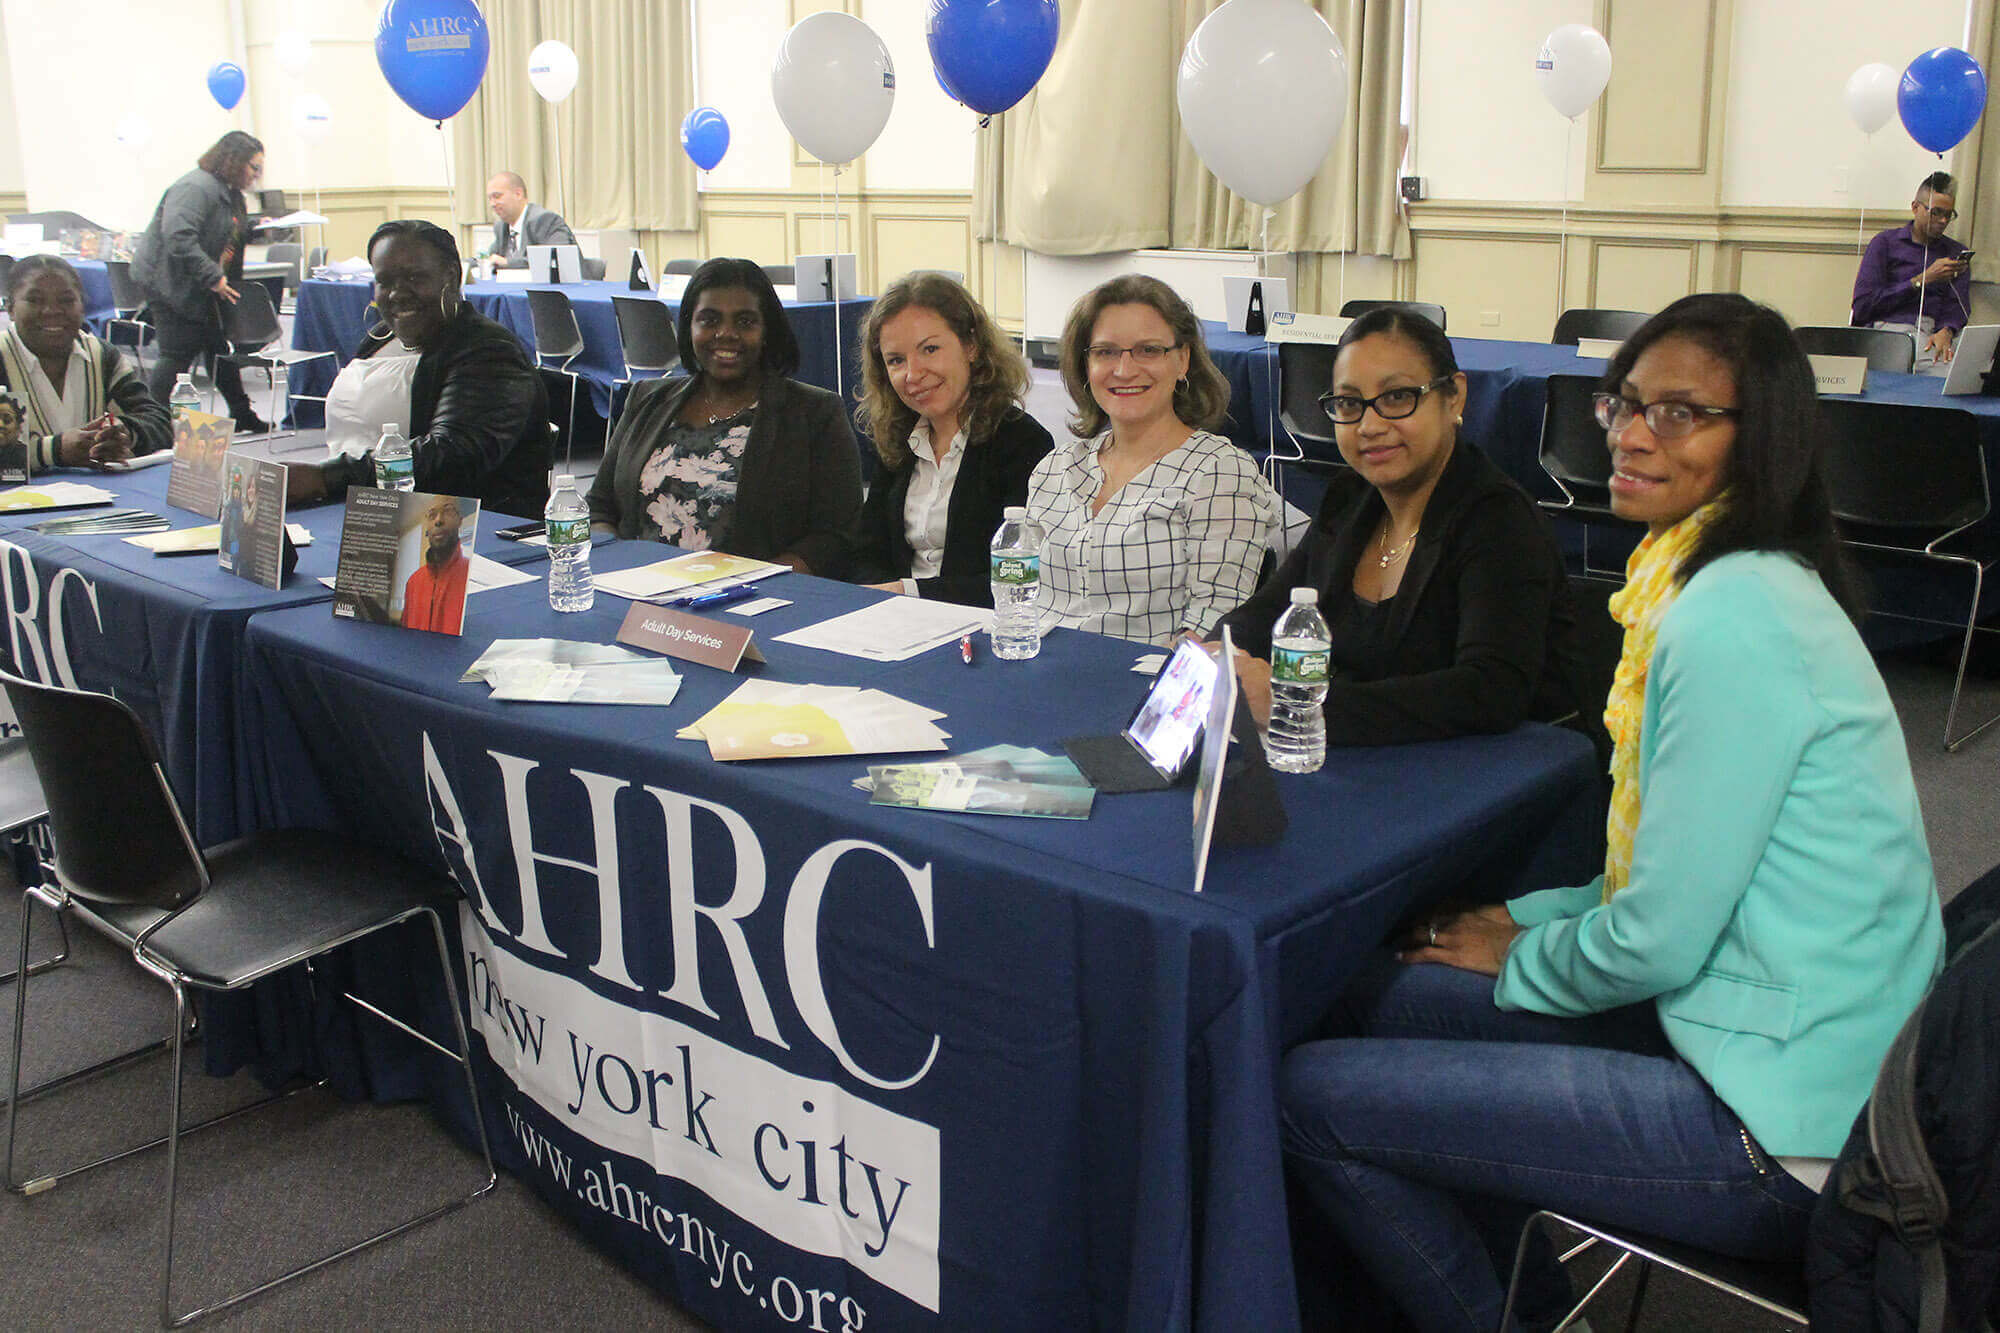 Representatives from various AHRC NYC programs were on hand to greet job seekers